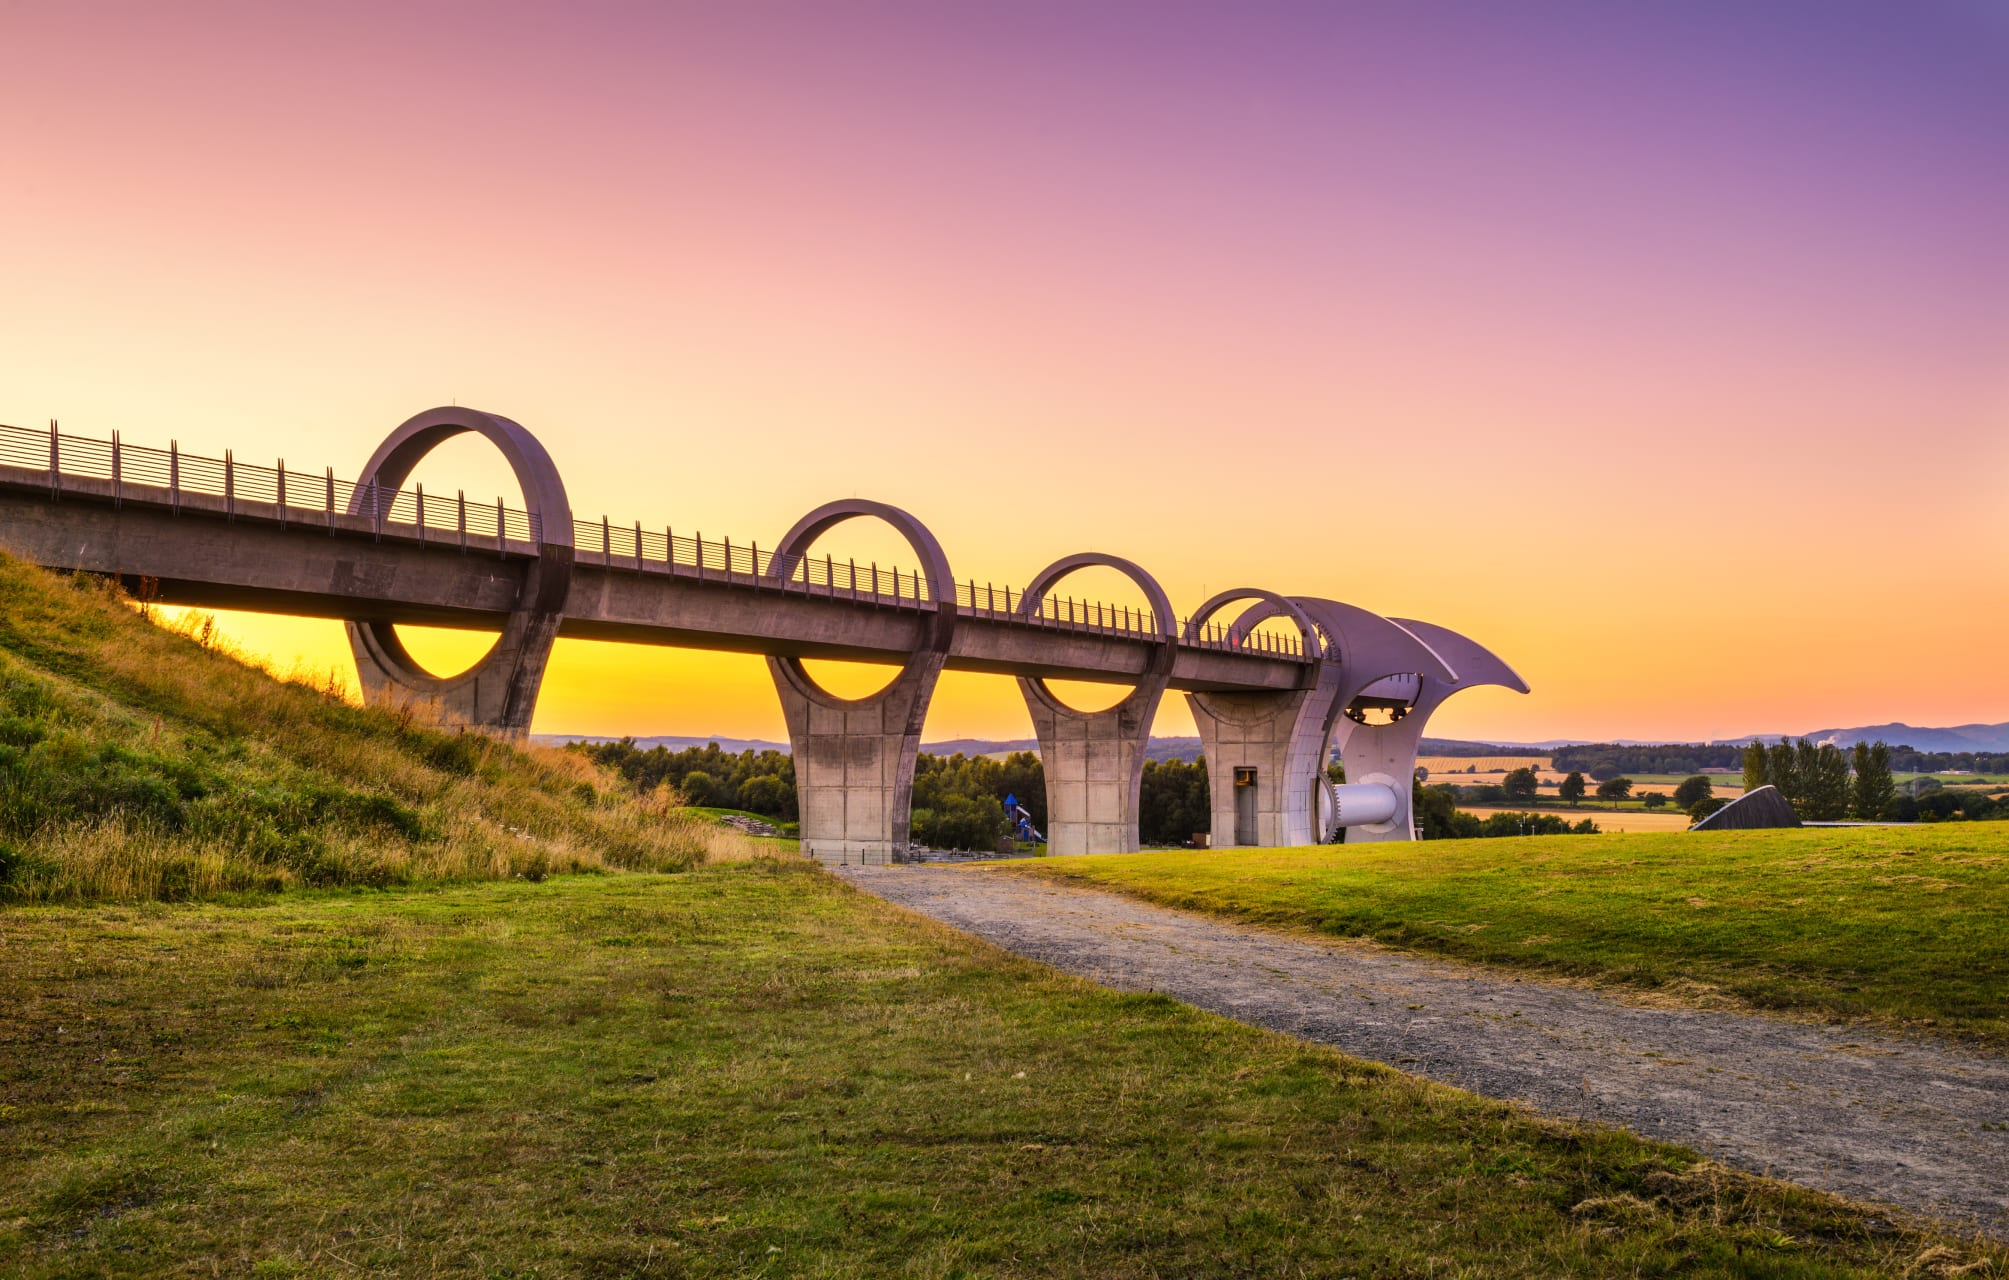 Central Scotland - Falkirk Wheel at Night - the World's First and Only Rotating Boat Lift!